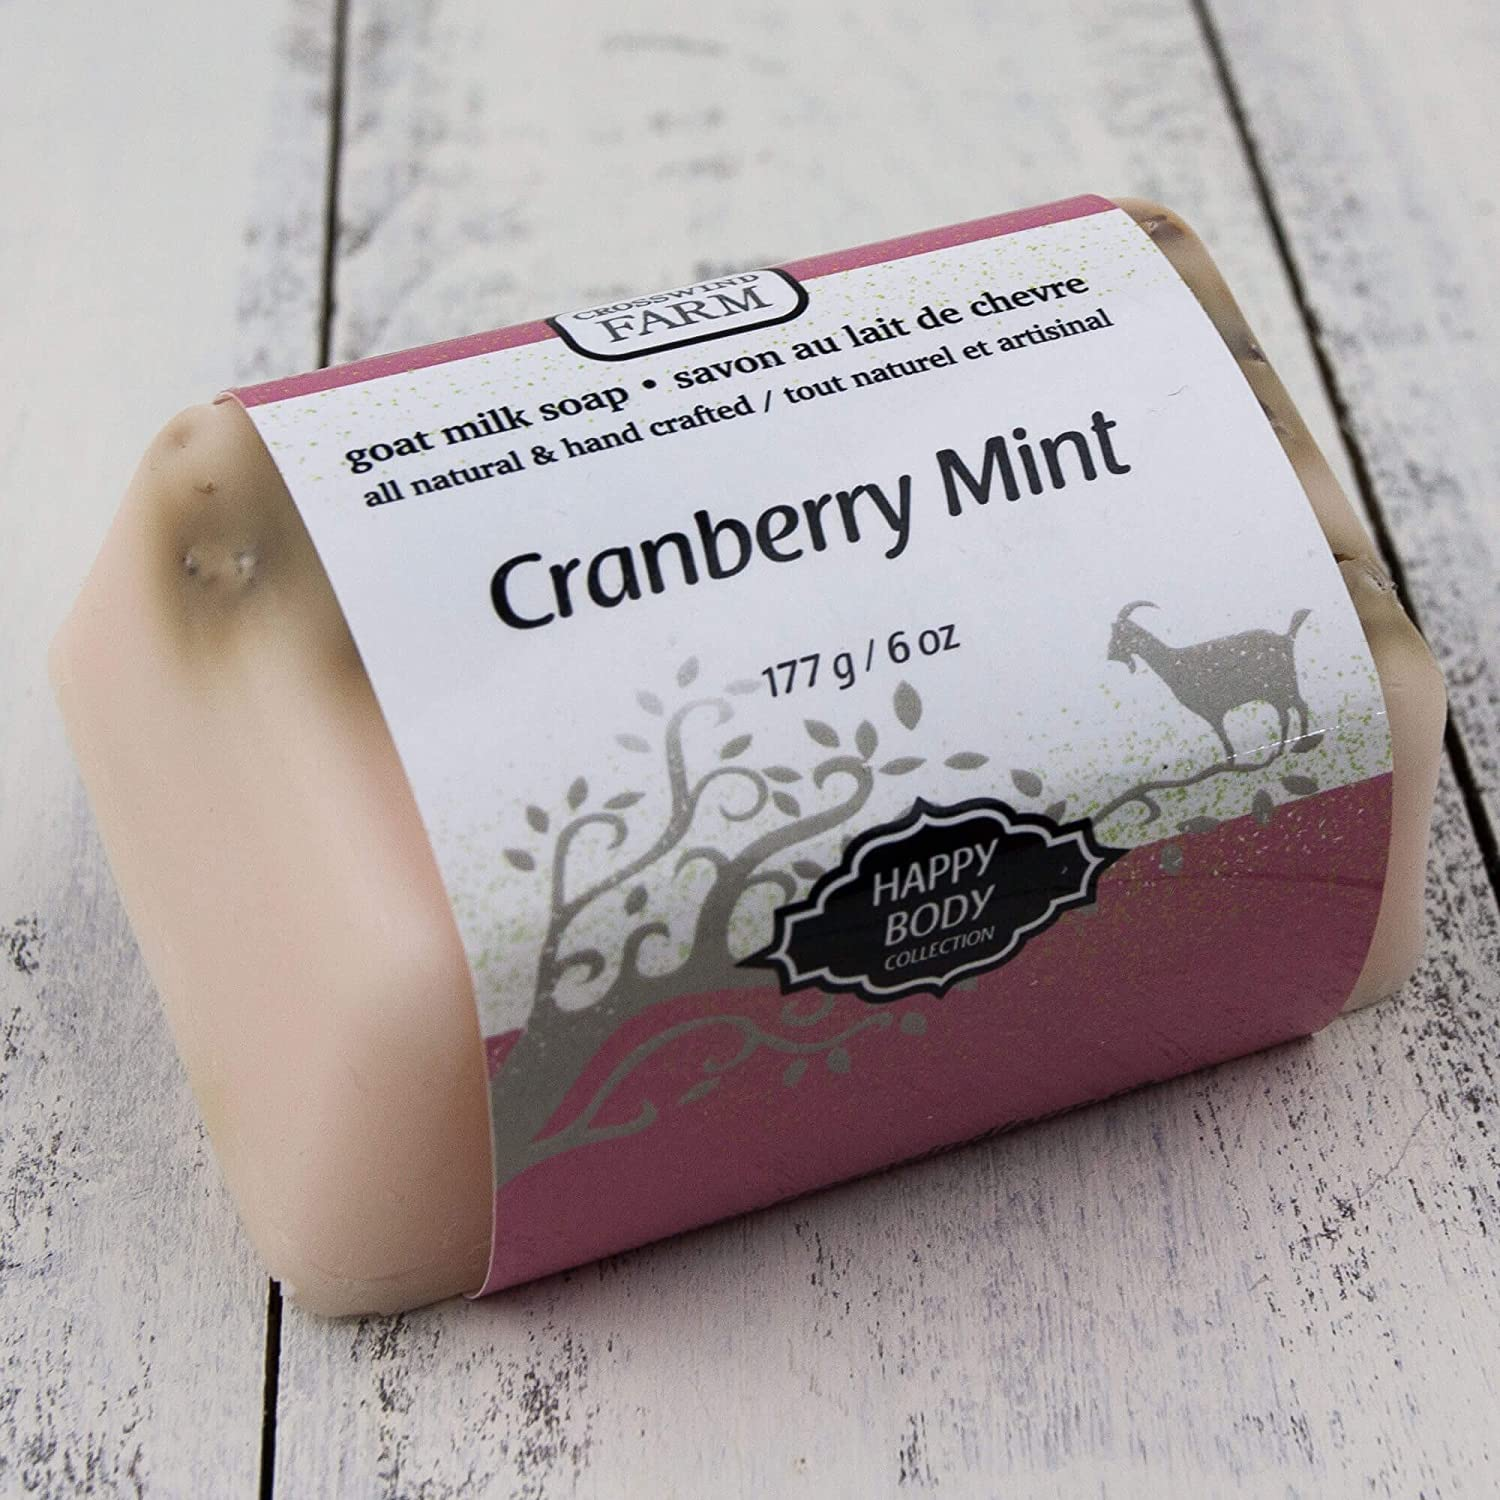 Cranberry Mint Goat Milk Soap